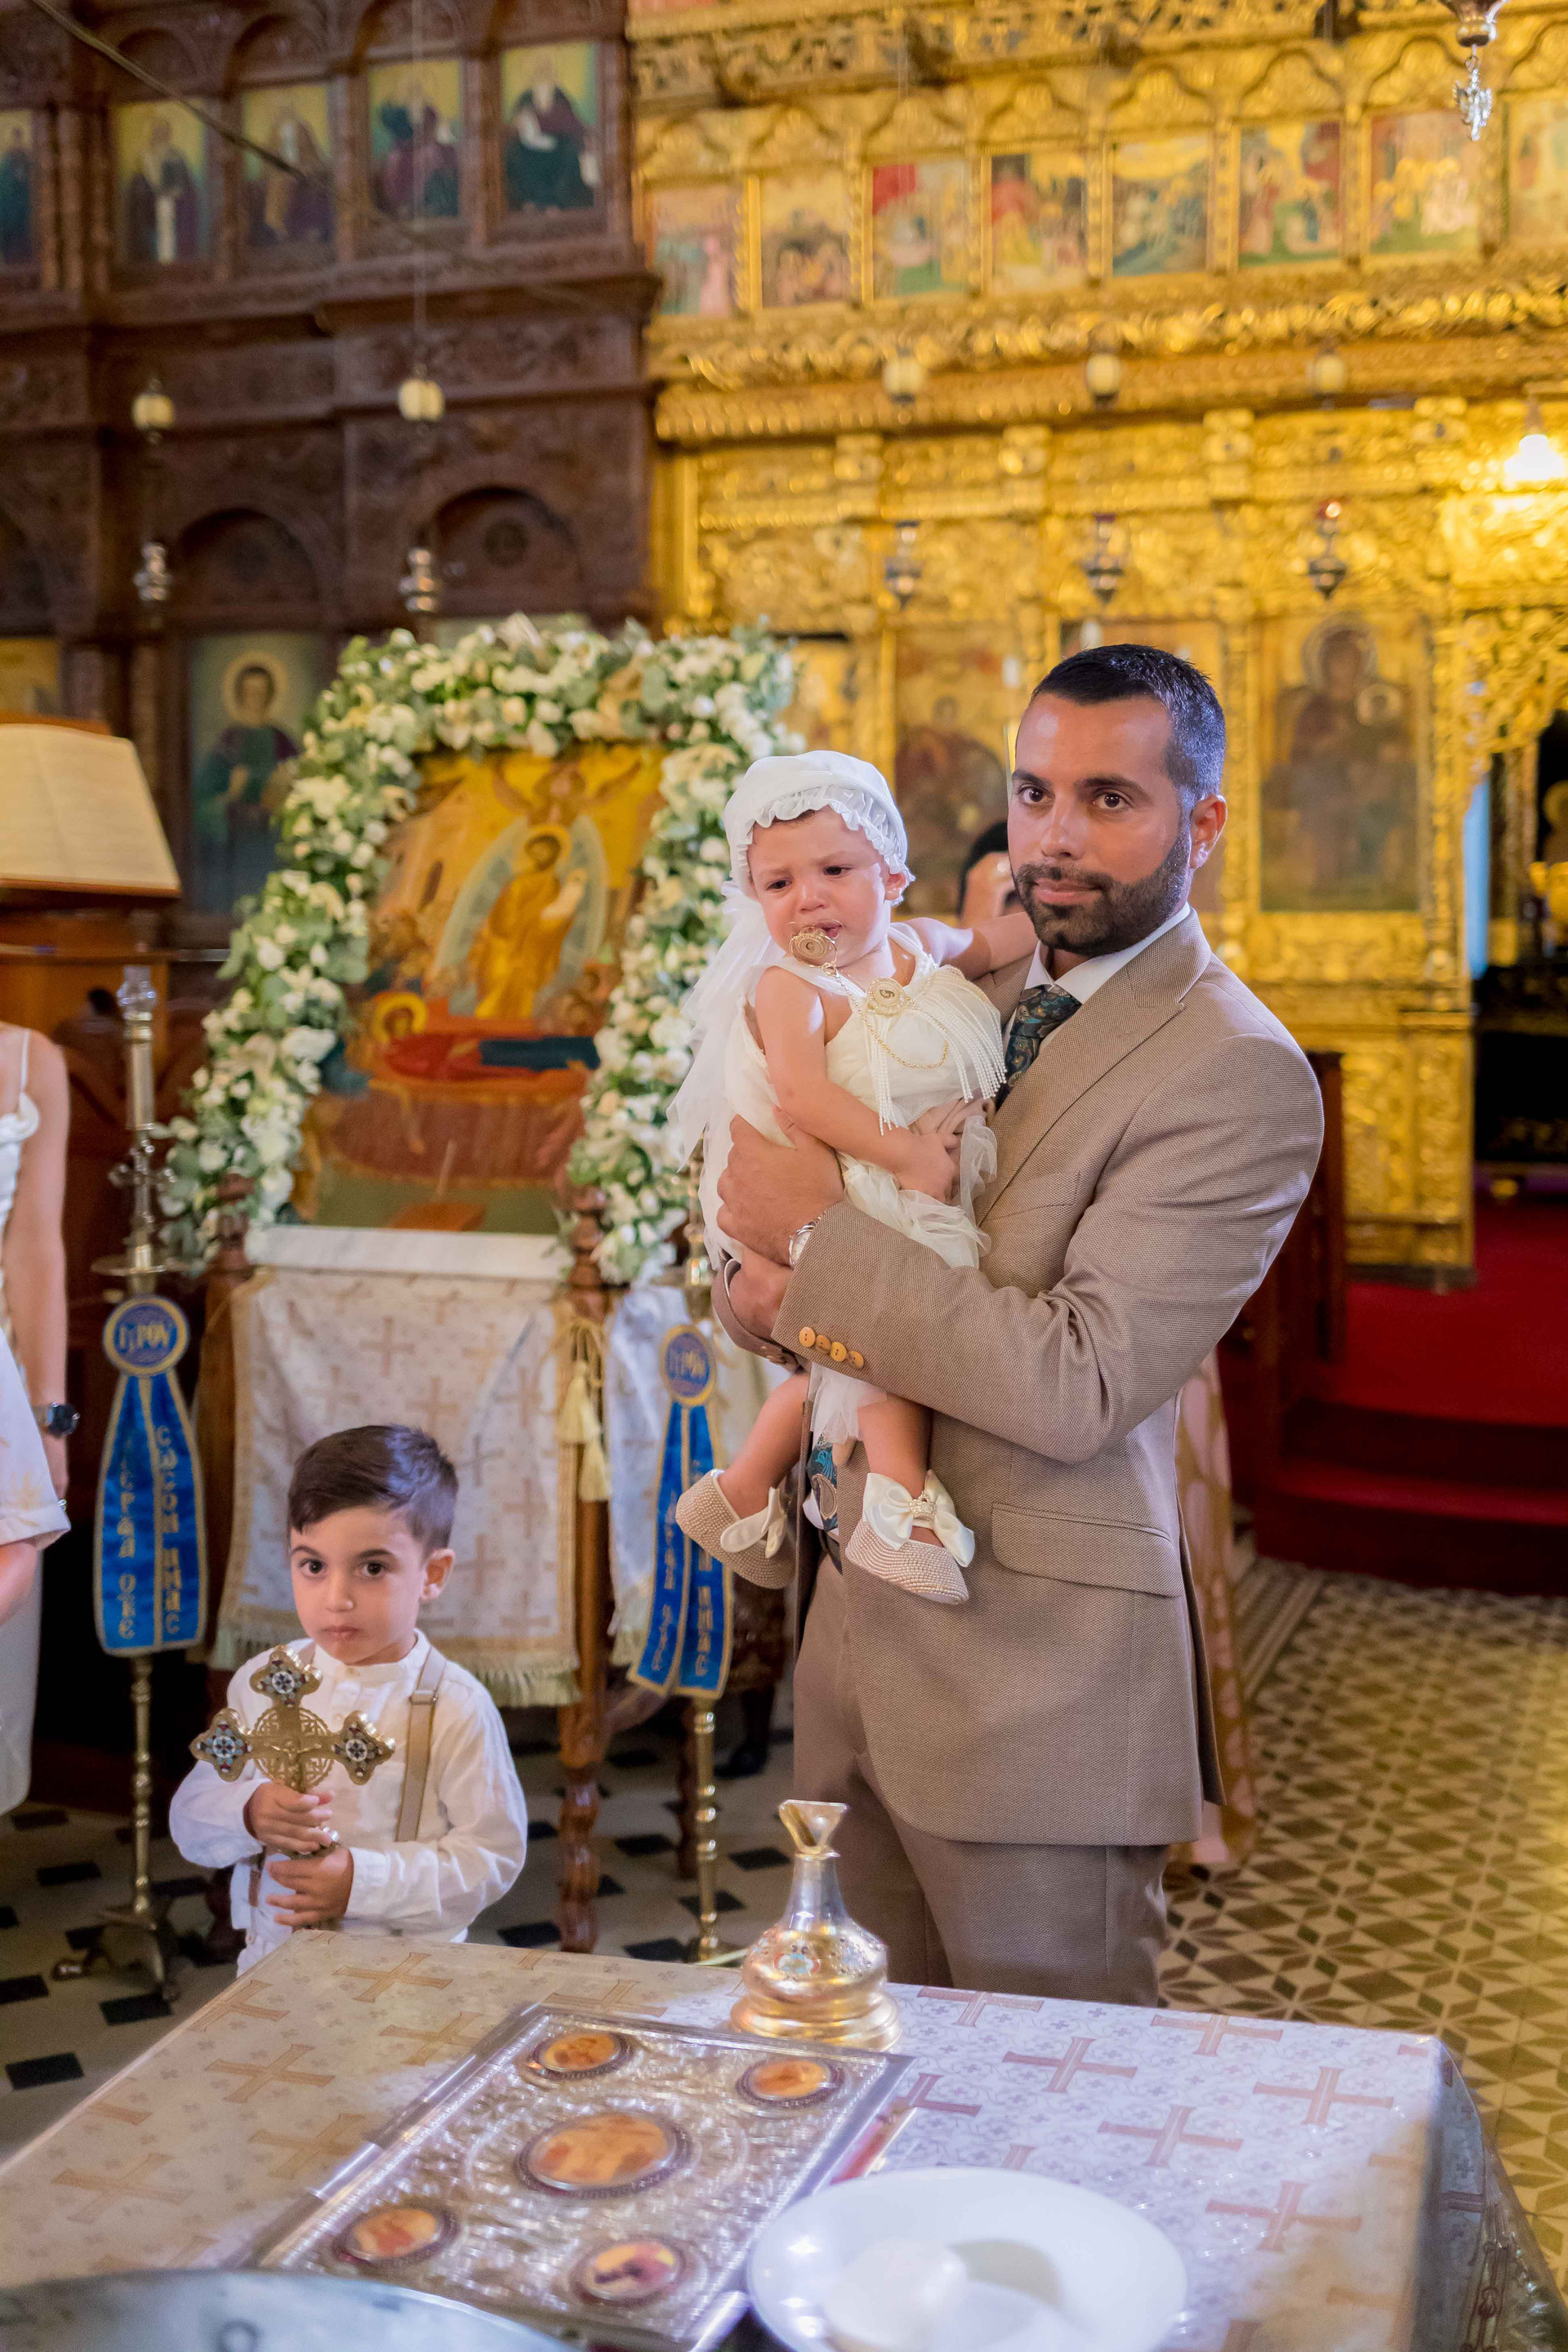 Georgias Christening 1808202044.jpg